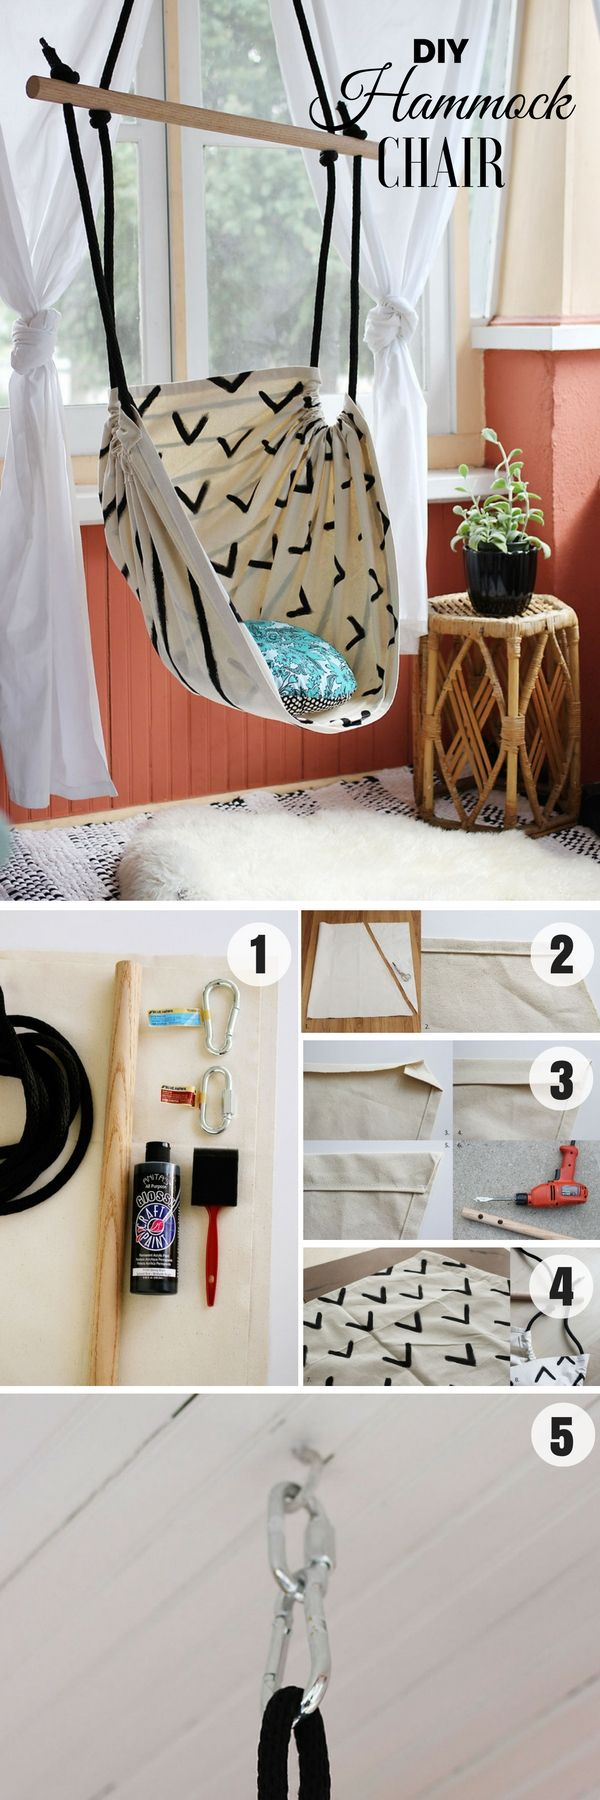 Diy House Decorating Ideas do it yourself home decorating ideas inspiring goodly do it yourself ideas for home perfect 16 Beautiful Diy Bedroom Decor Ideas That Will Inspire You